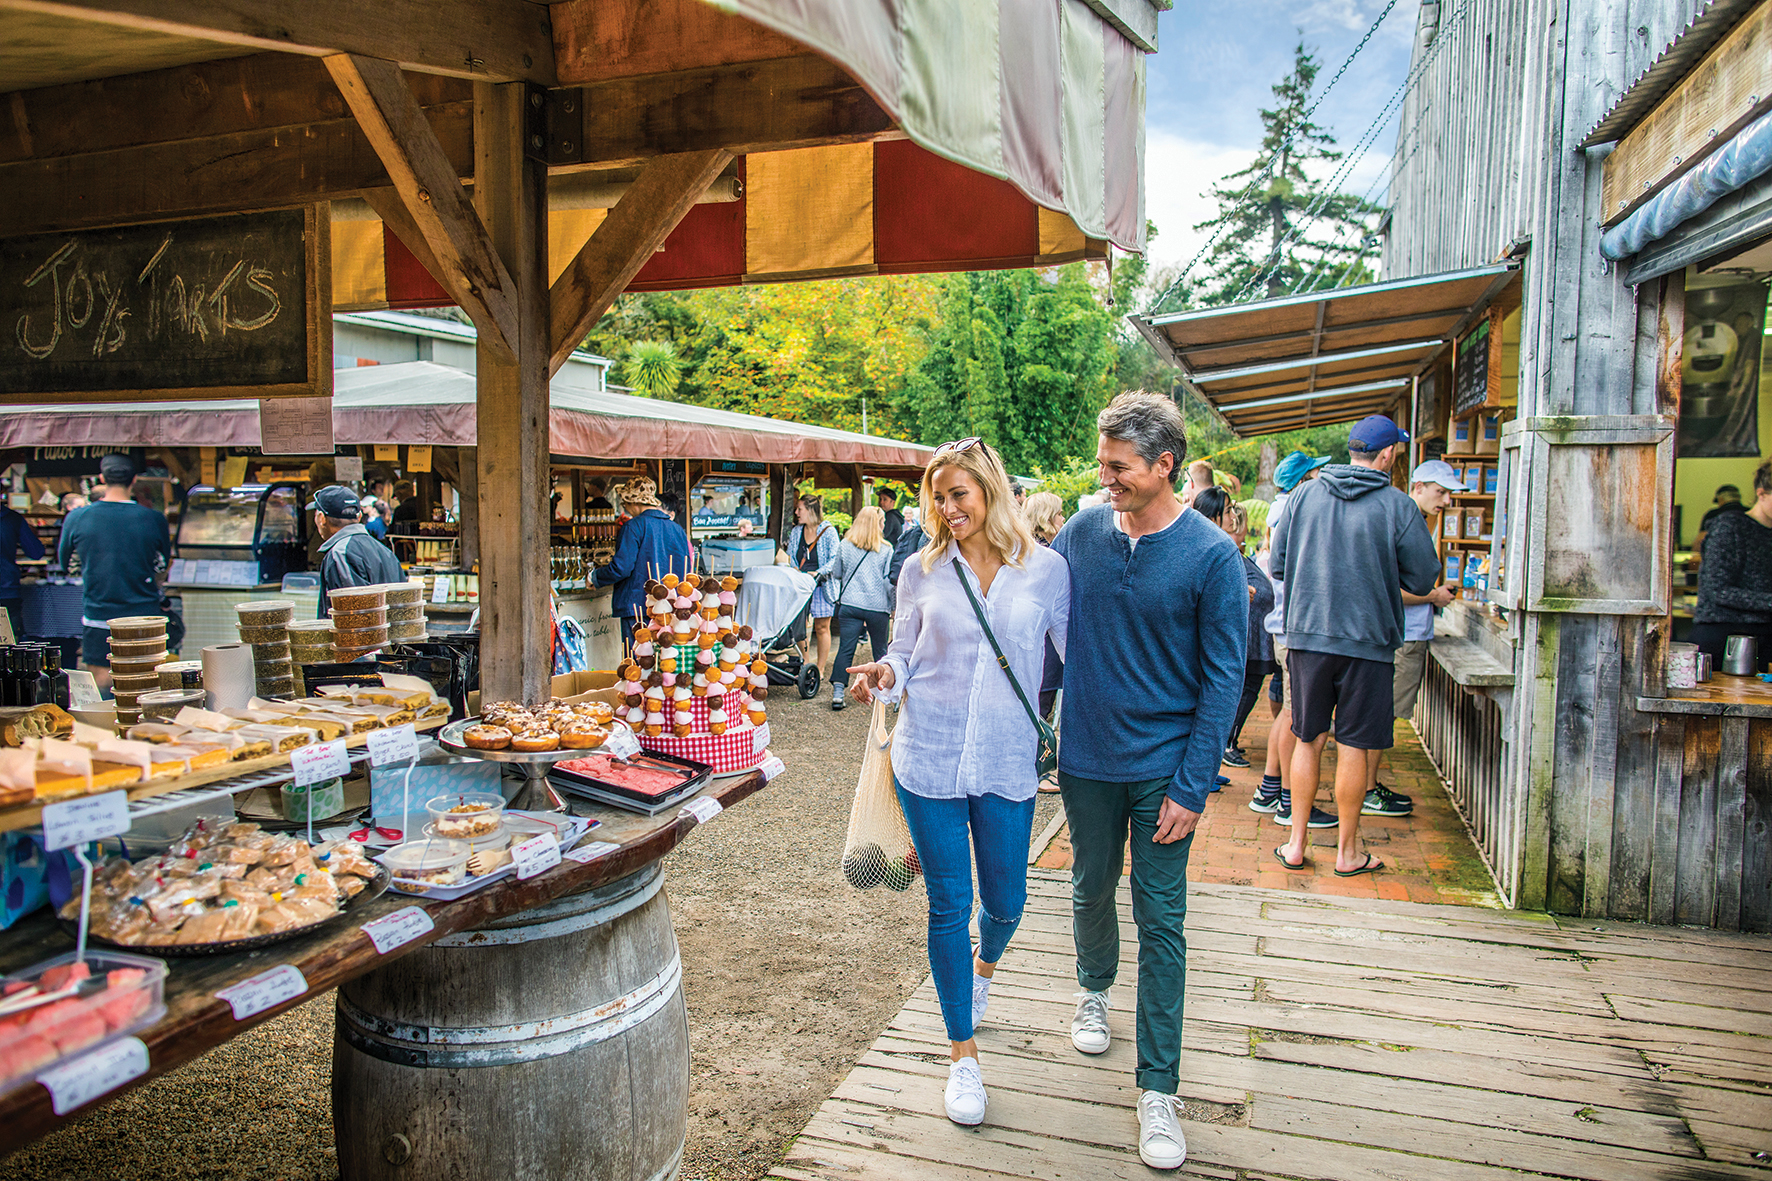 An easy drive from New Zealand's largest city, Matakana captures the essence of kiwi rural bliss as the arts and foodie gateway to the North, discovers Nick Walton.